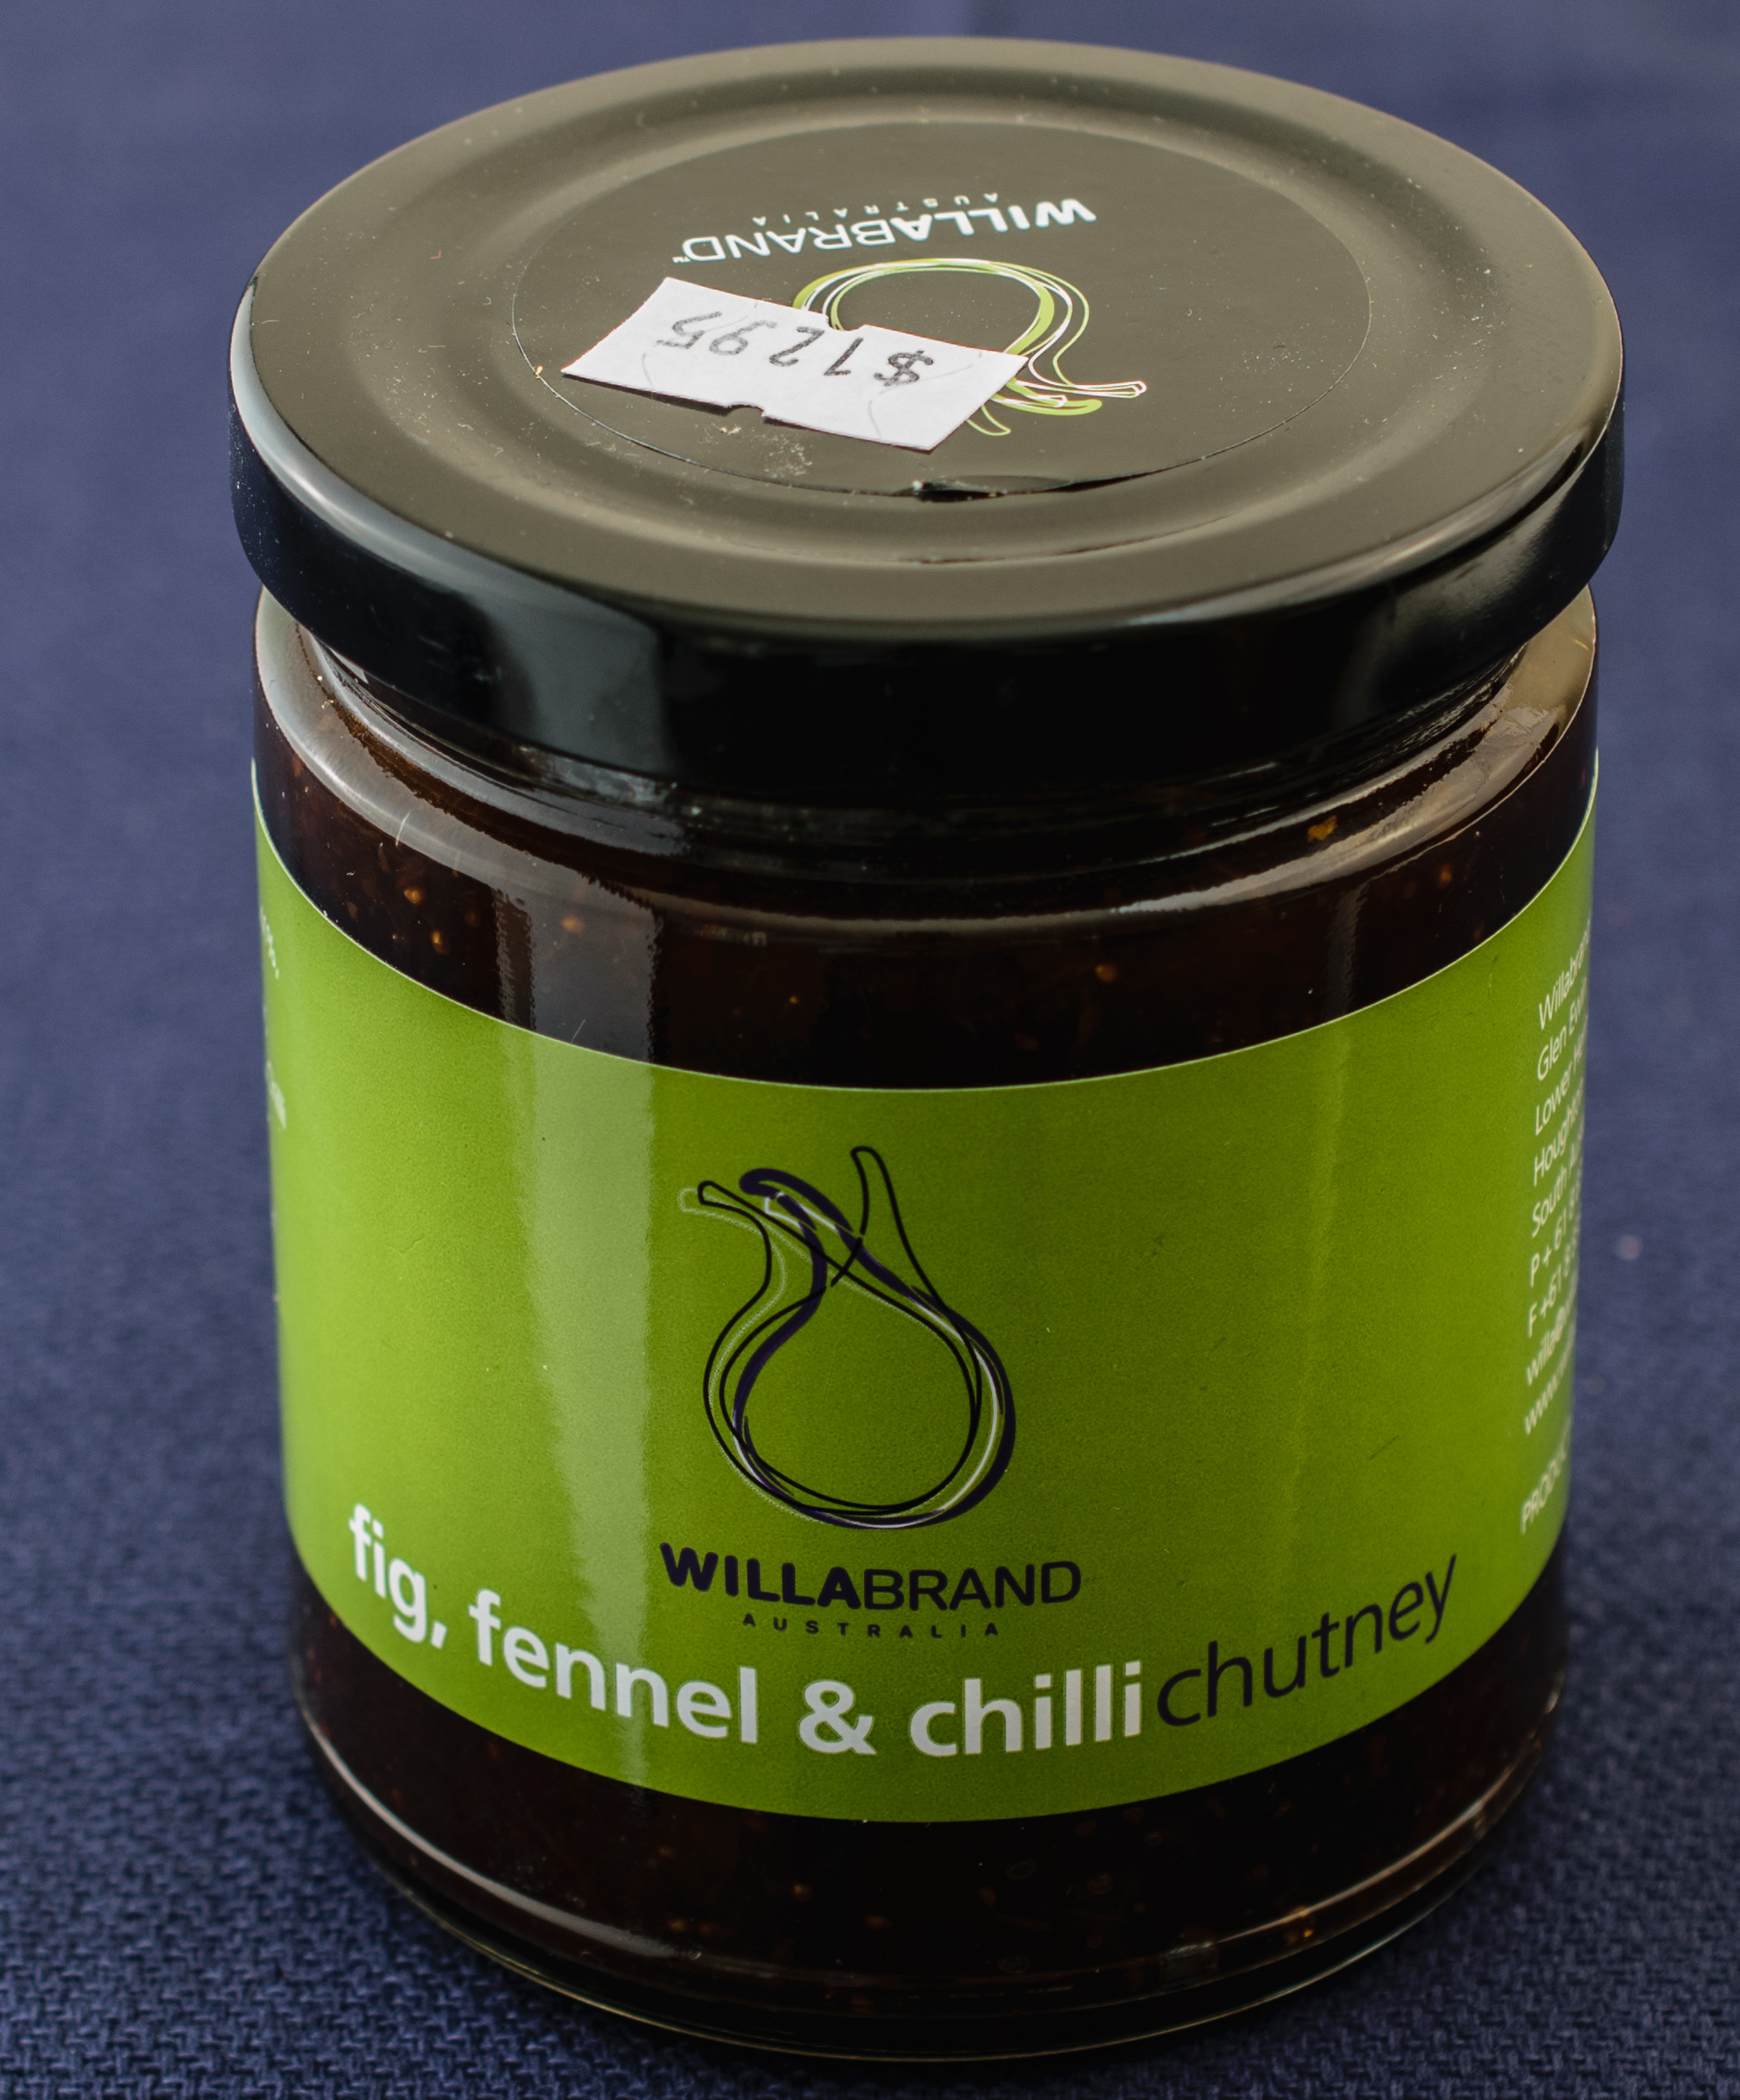 fig, fennel and chilli chutney